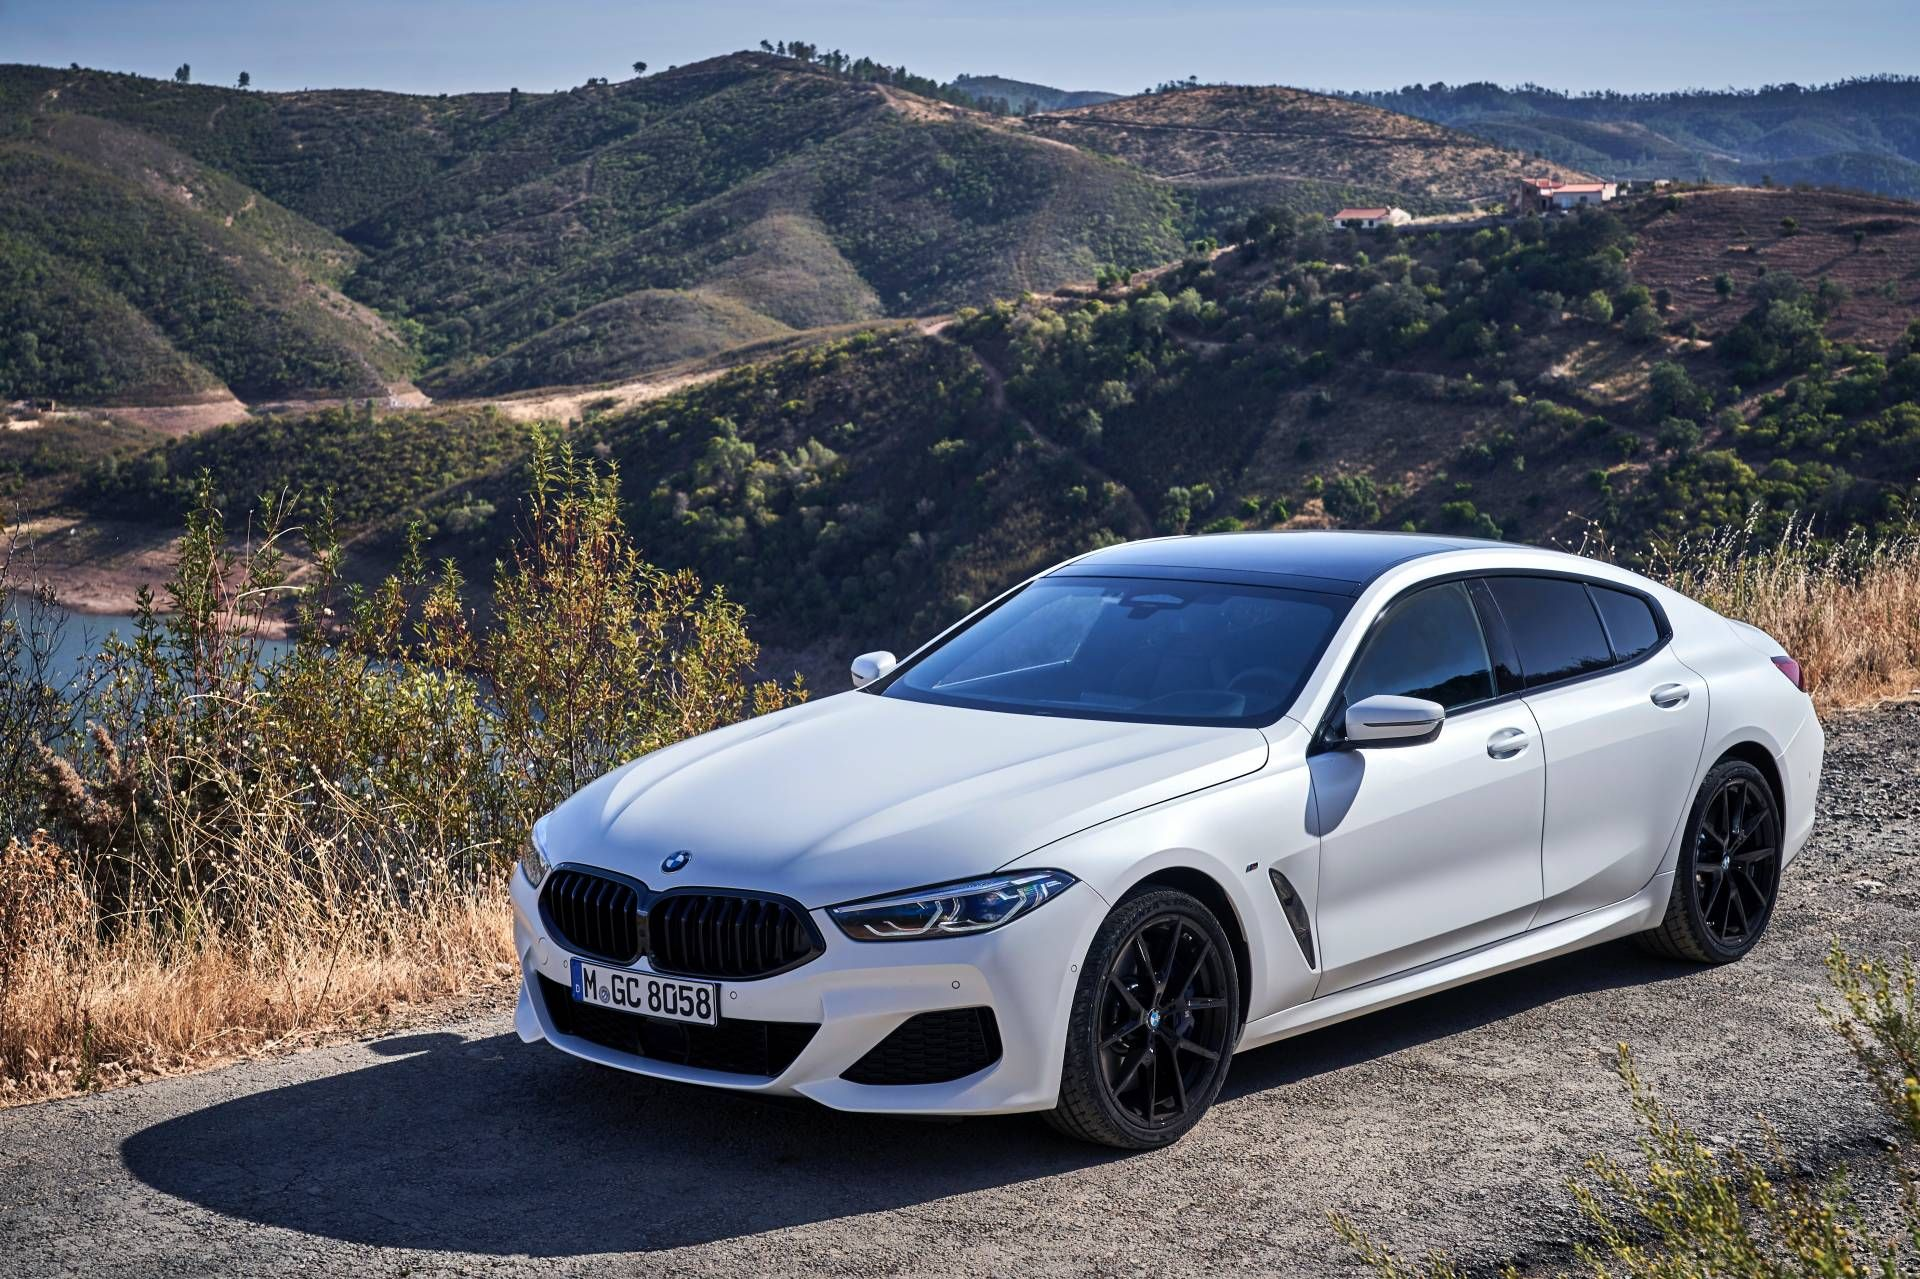 Bmw 840i Gran Coupe 2020 The Most Beautiful Bmw Youtube 2020 Bmw Bmw 840i Gran Coupe